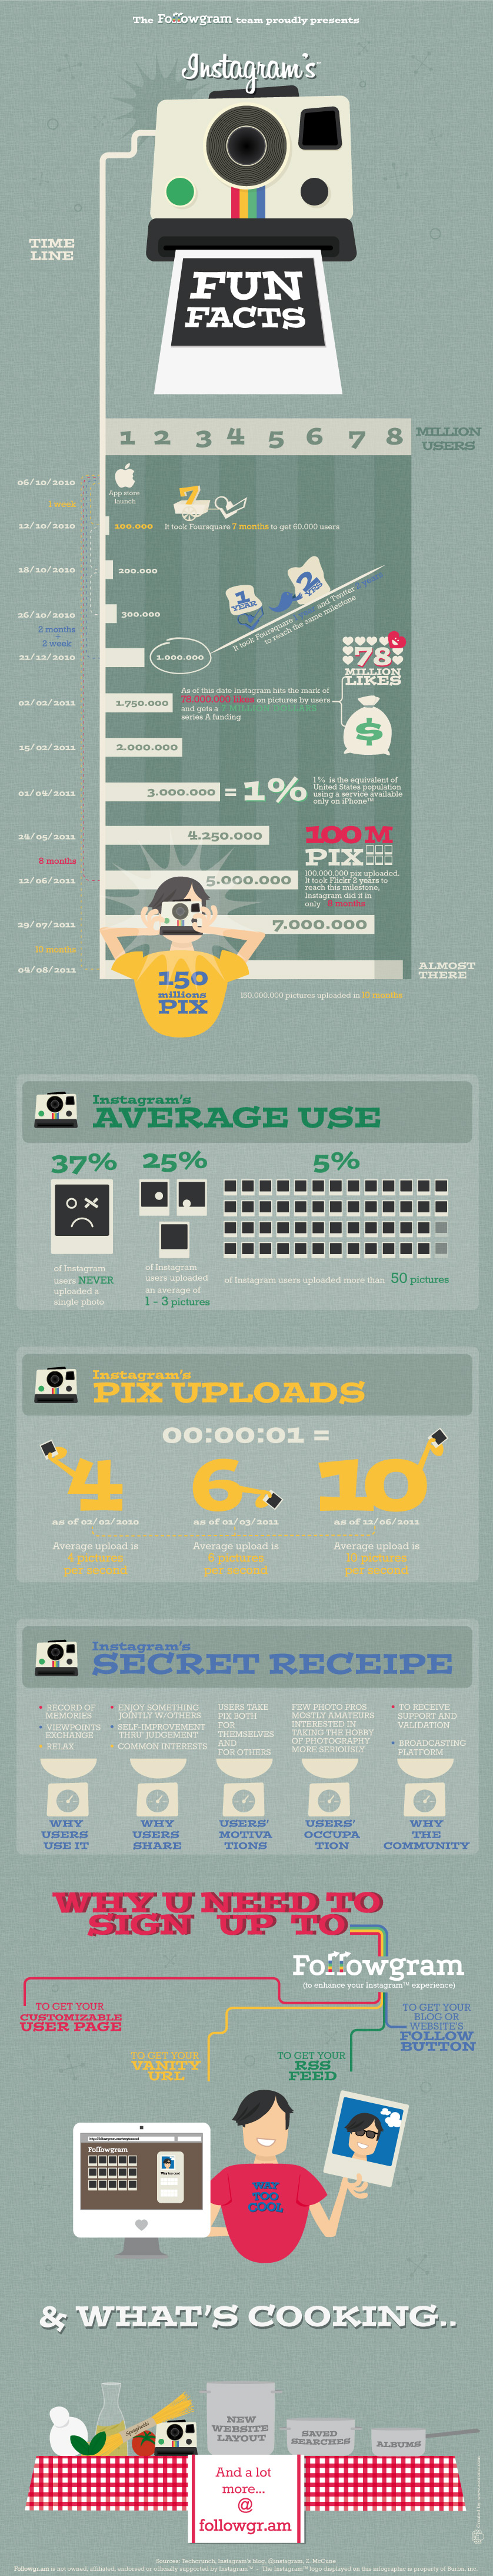 Instagram growing twice as fast as Flickr, and other fun facts [Infographic]